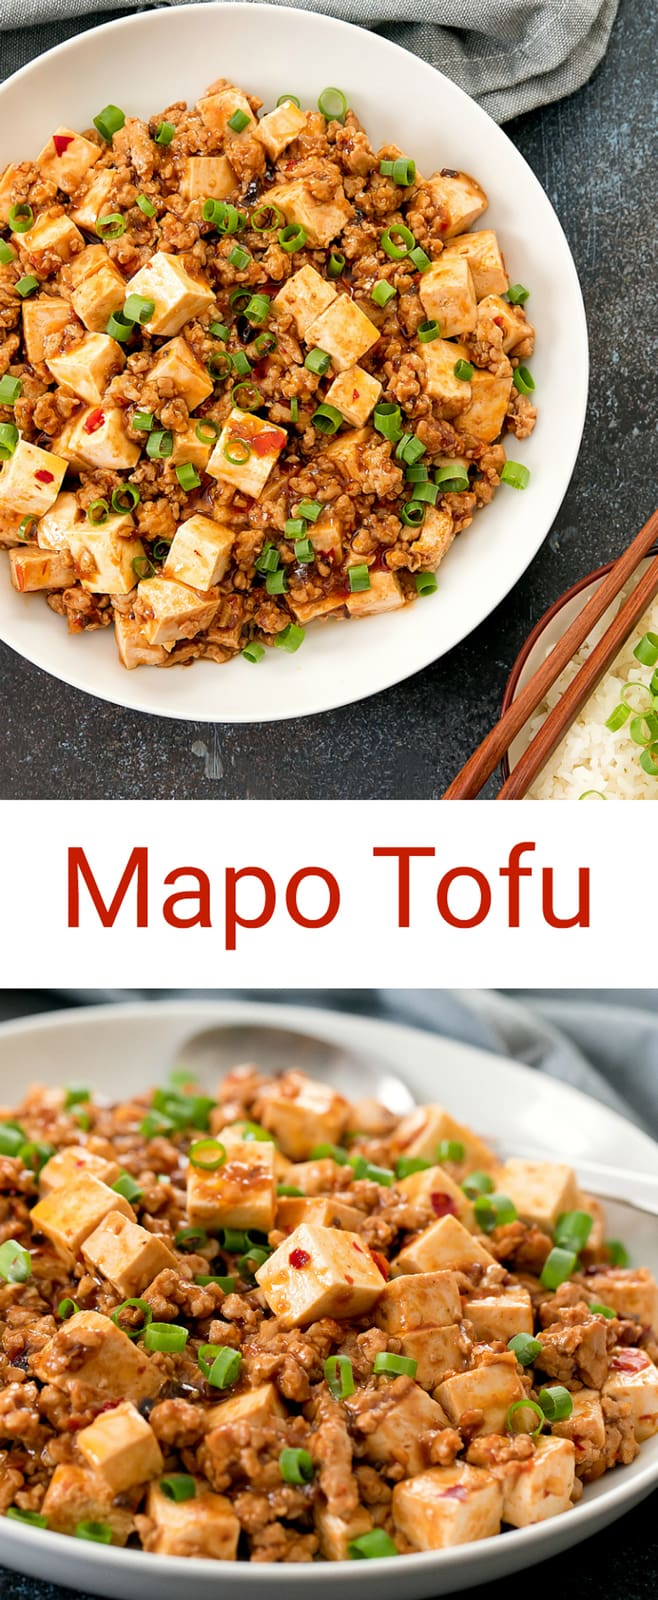 Mapo Tofu. Learn how to make an authentic version of this popular Chinese Sichuan dish at home.